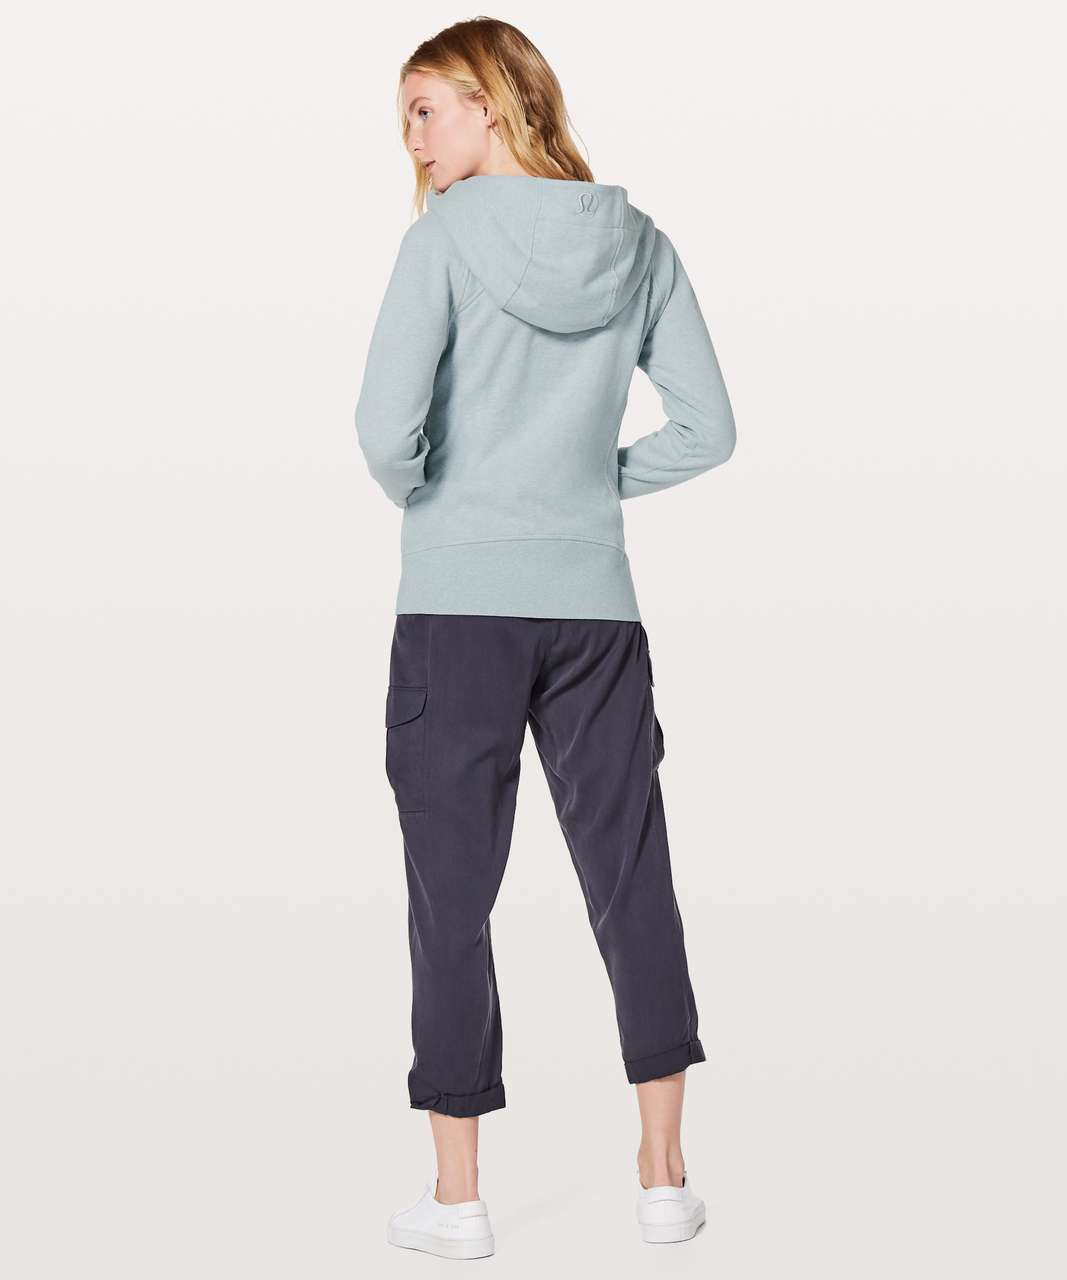 Lululemon Scuba Hoodie *Light Cotton Fleece - Heathered Dawn Blue / Dawn Blue